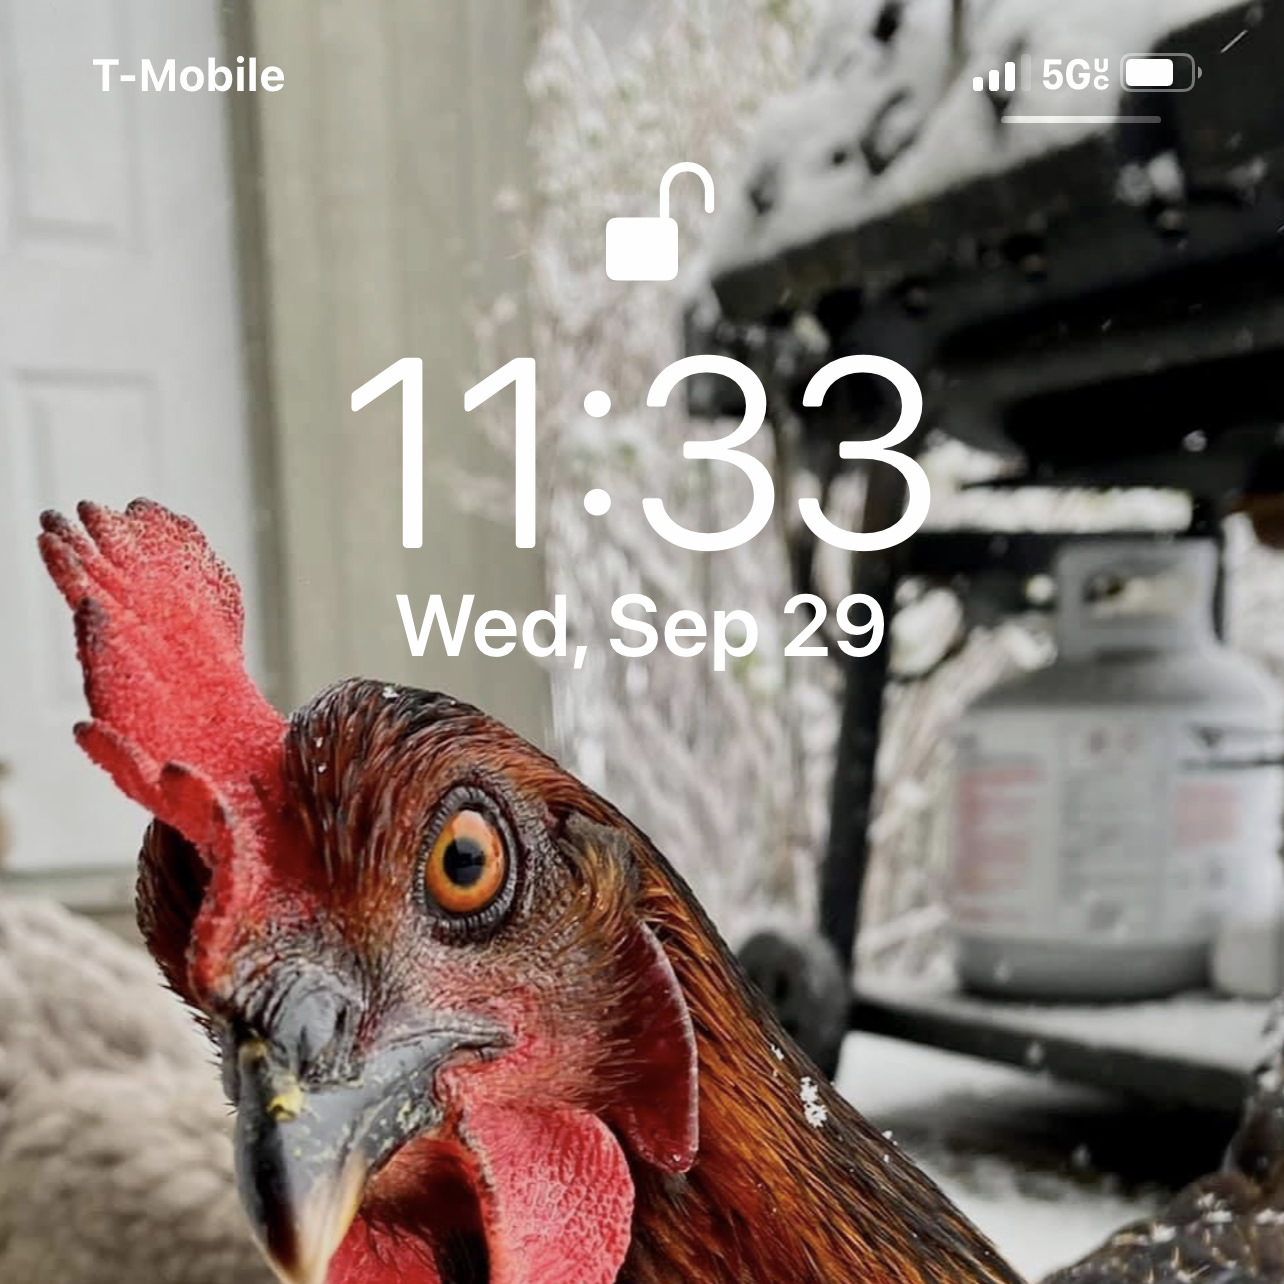 My phone lock screen as a chicken with 5GUC in the upper corner.